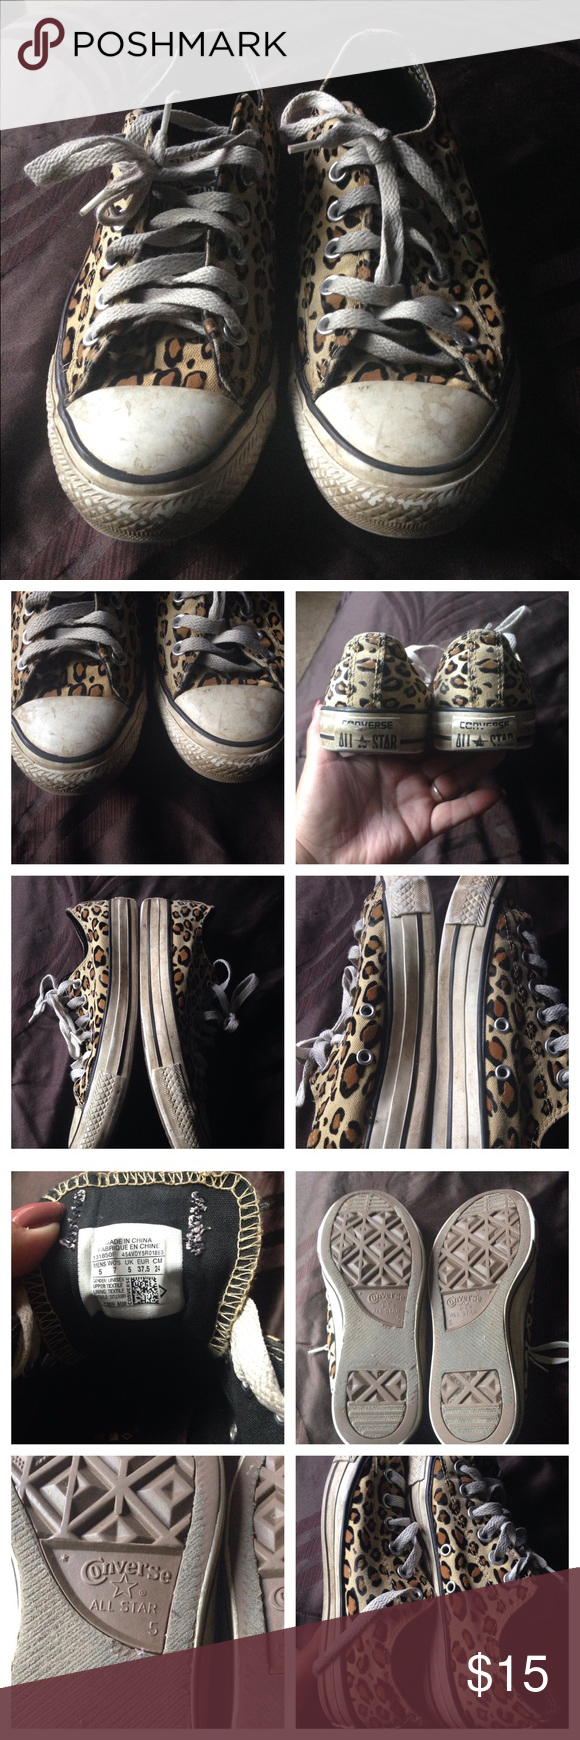 Used Leopard converse size 7 Men's size 5, women's size 7. These are used, however there's no rips or odors. The white parts of the shoe are very dirty, I'm sure you can remove with a good wipe down, I just don't wear them anymore Converse Shoes Sneakers